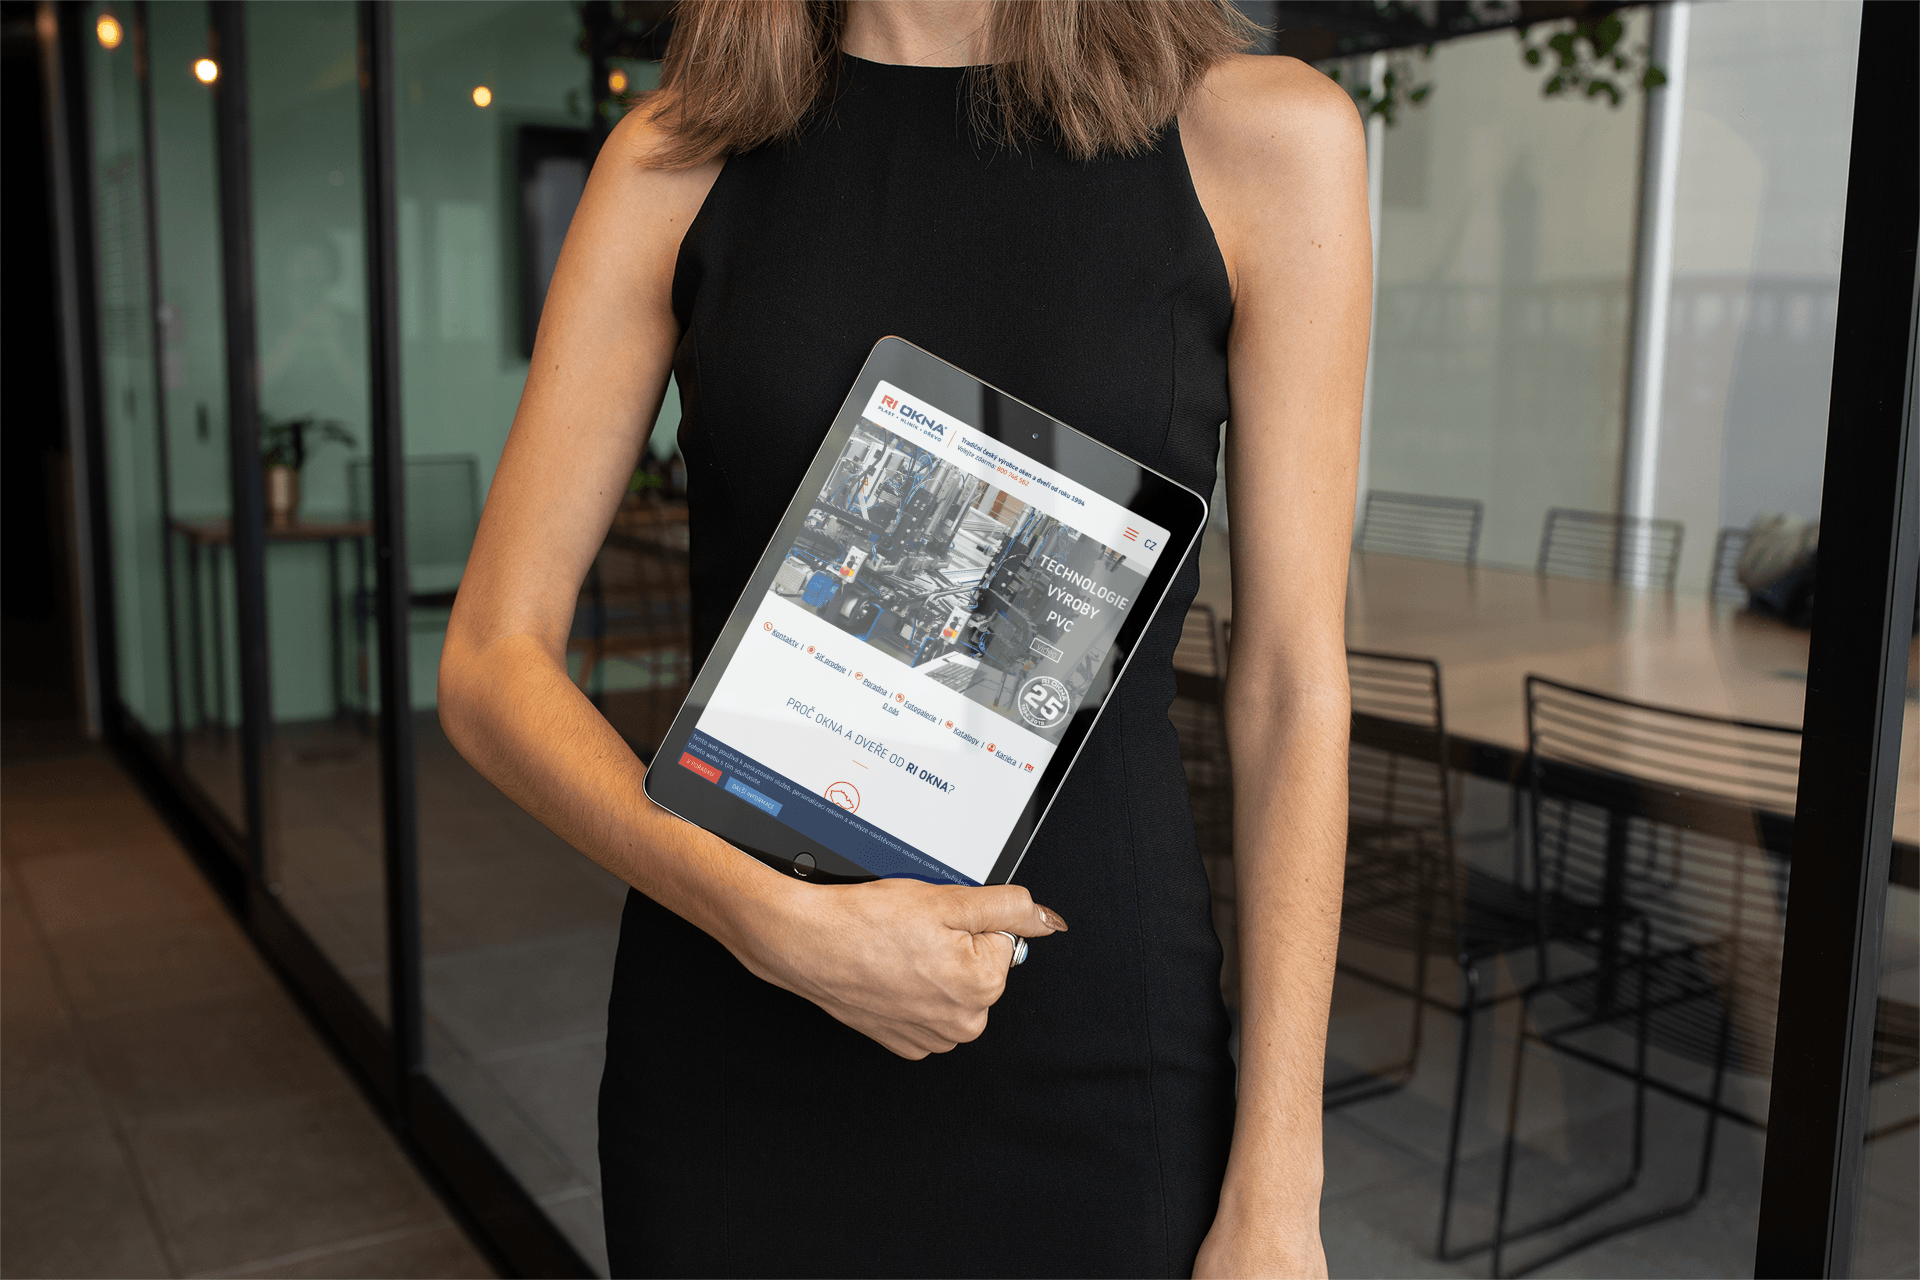 mockup-of-a-corporate-woman-carrying-an-ipad-22820